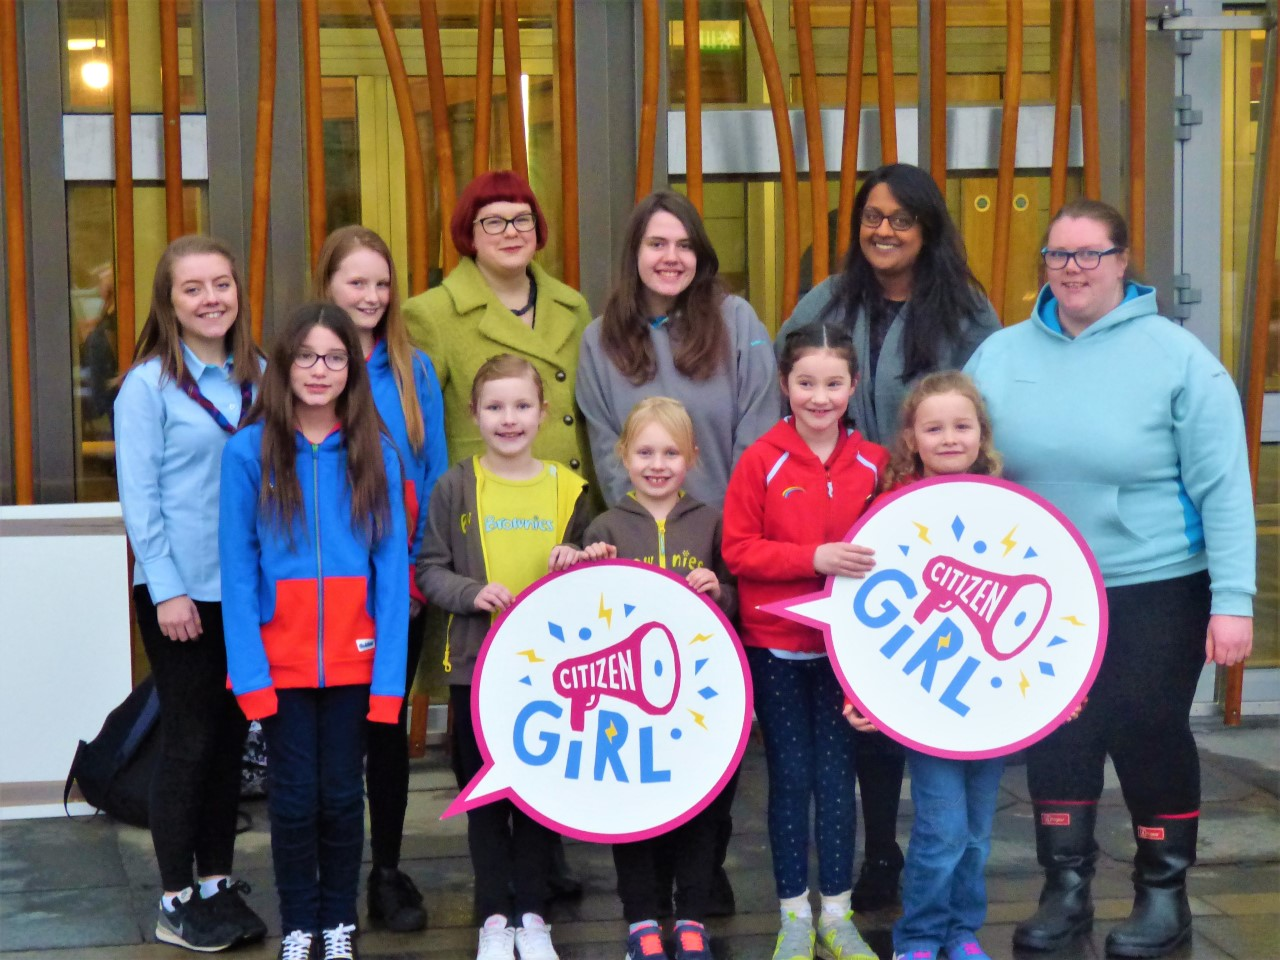 Emma Ritch and Talat Yaqoob, of Women 50:50, joined Girlguiding Scotland members to launch Citizen Girl